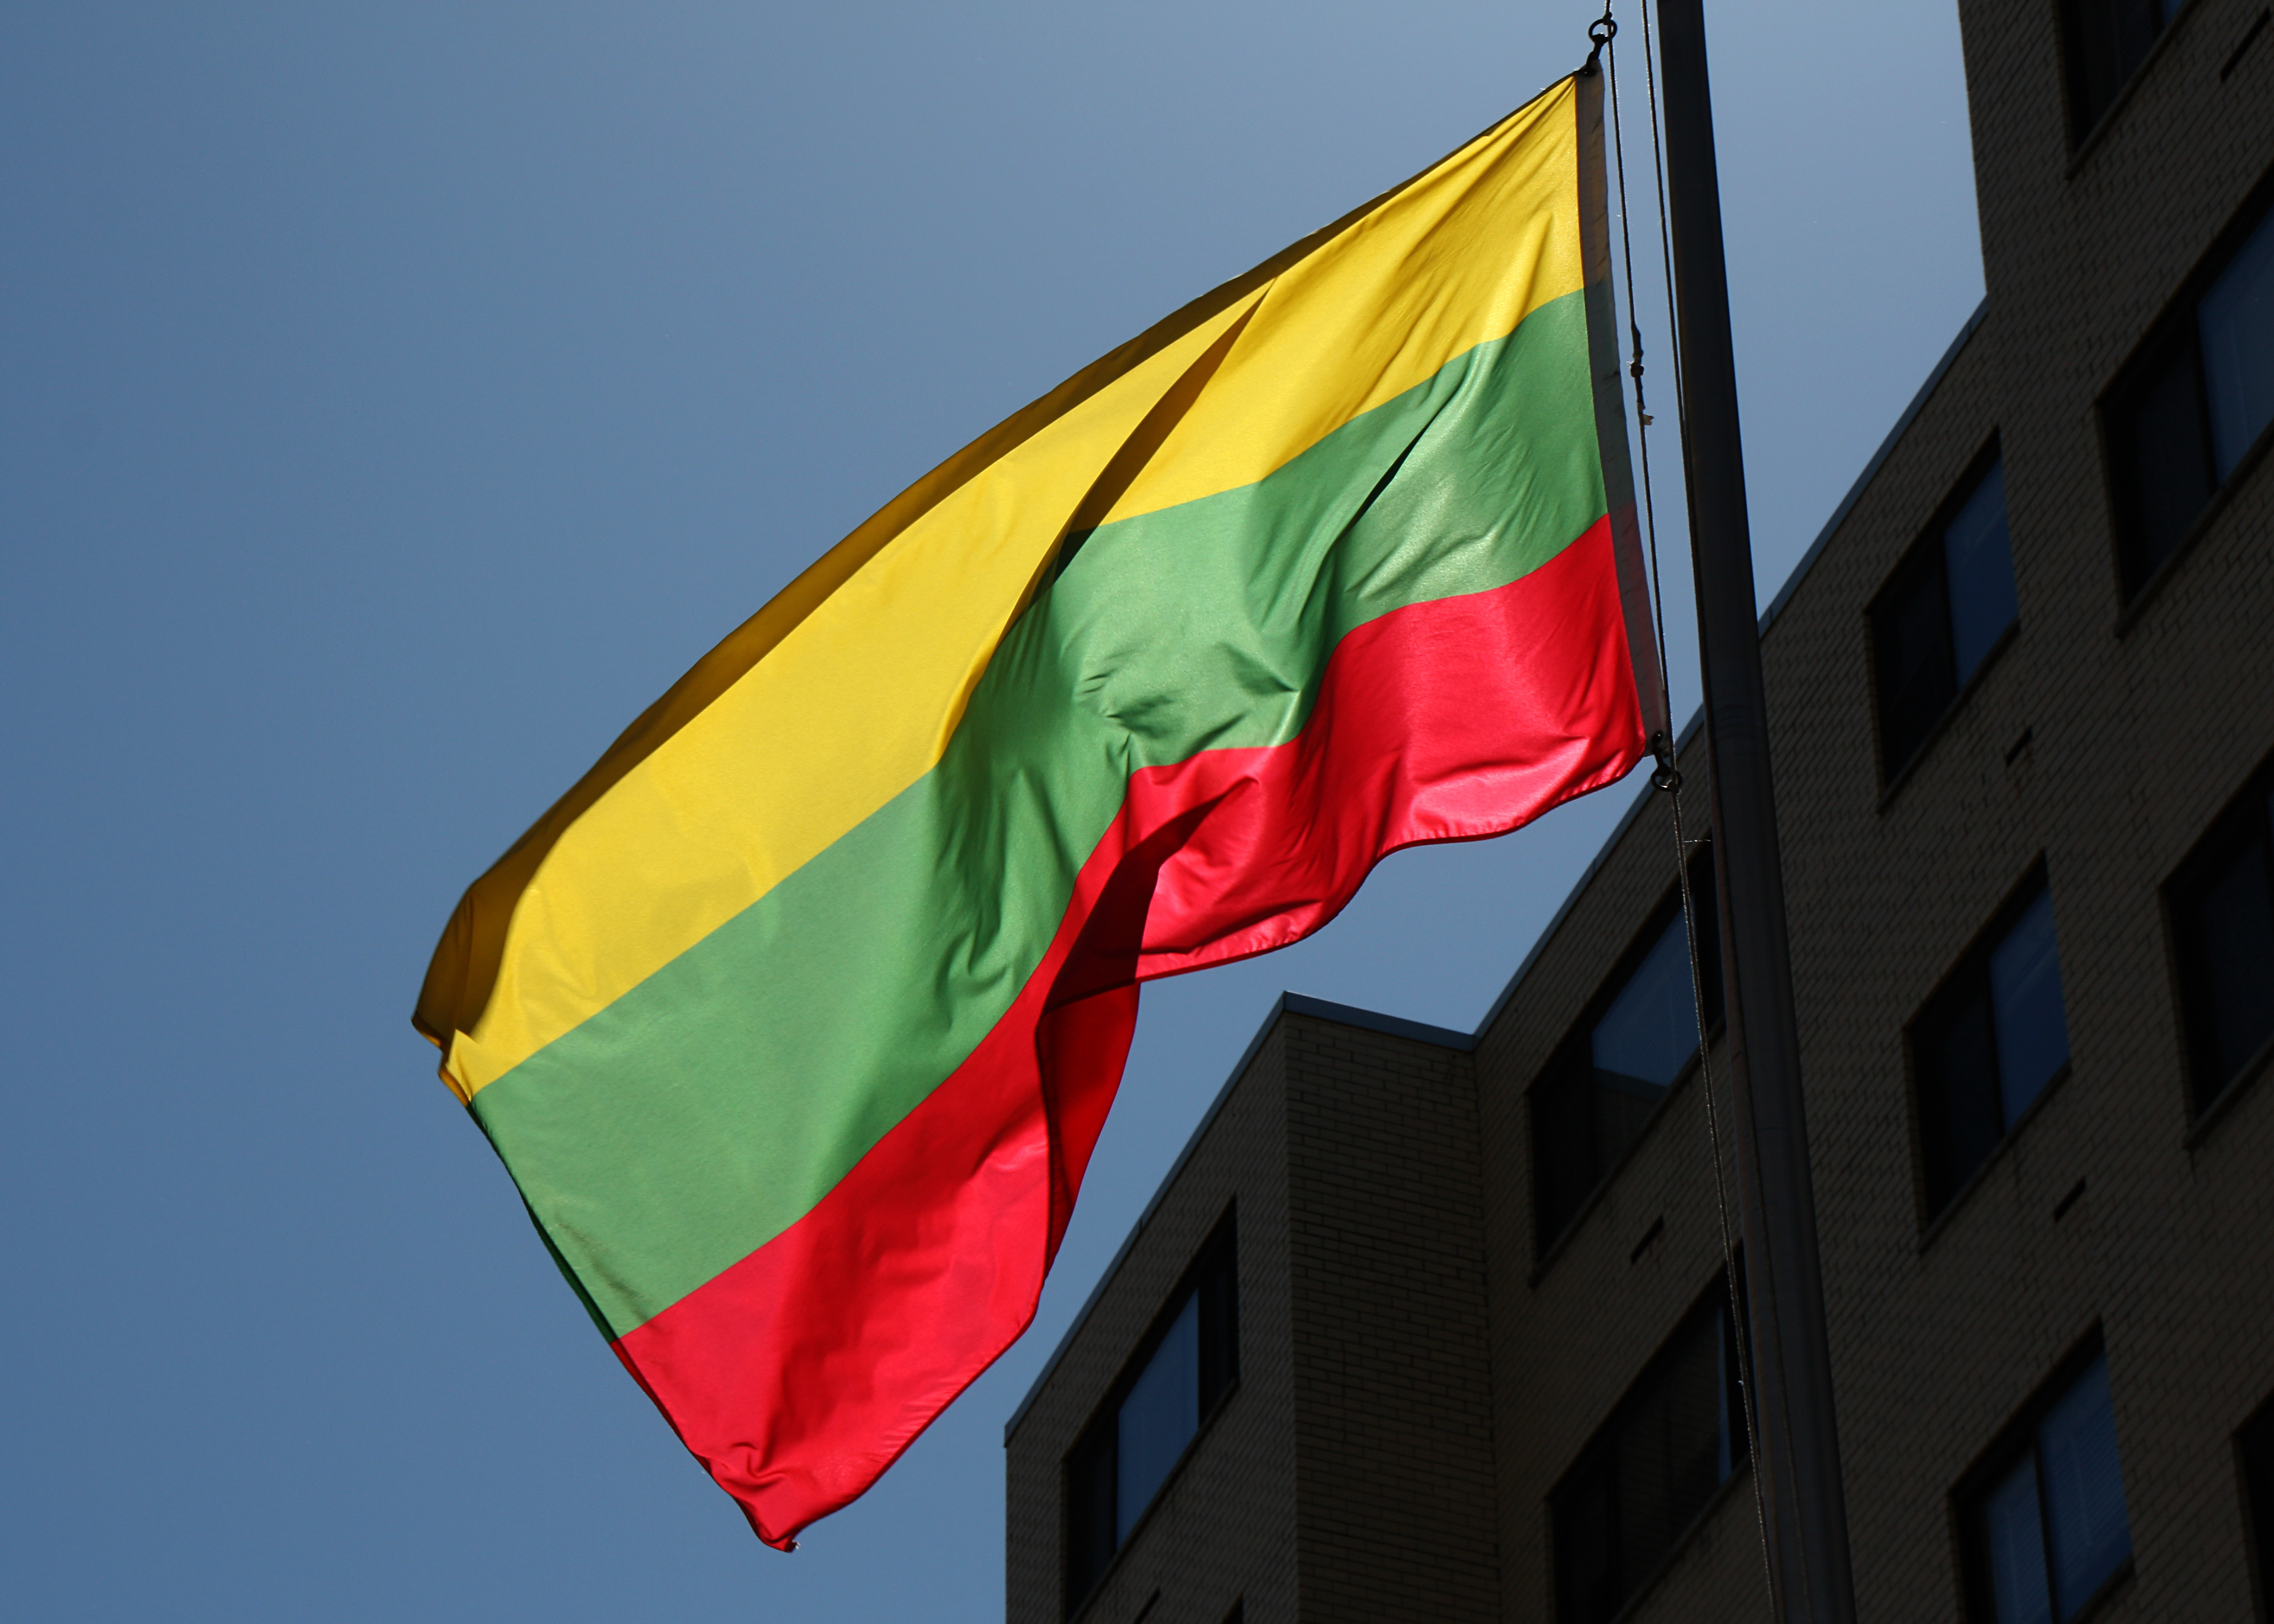 Flag_at_the_Embassy_of_Lithuania_in_Washington,_DC